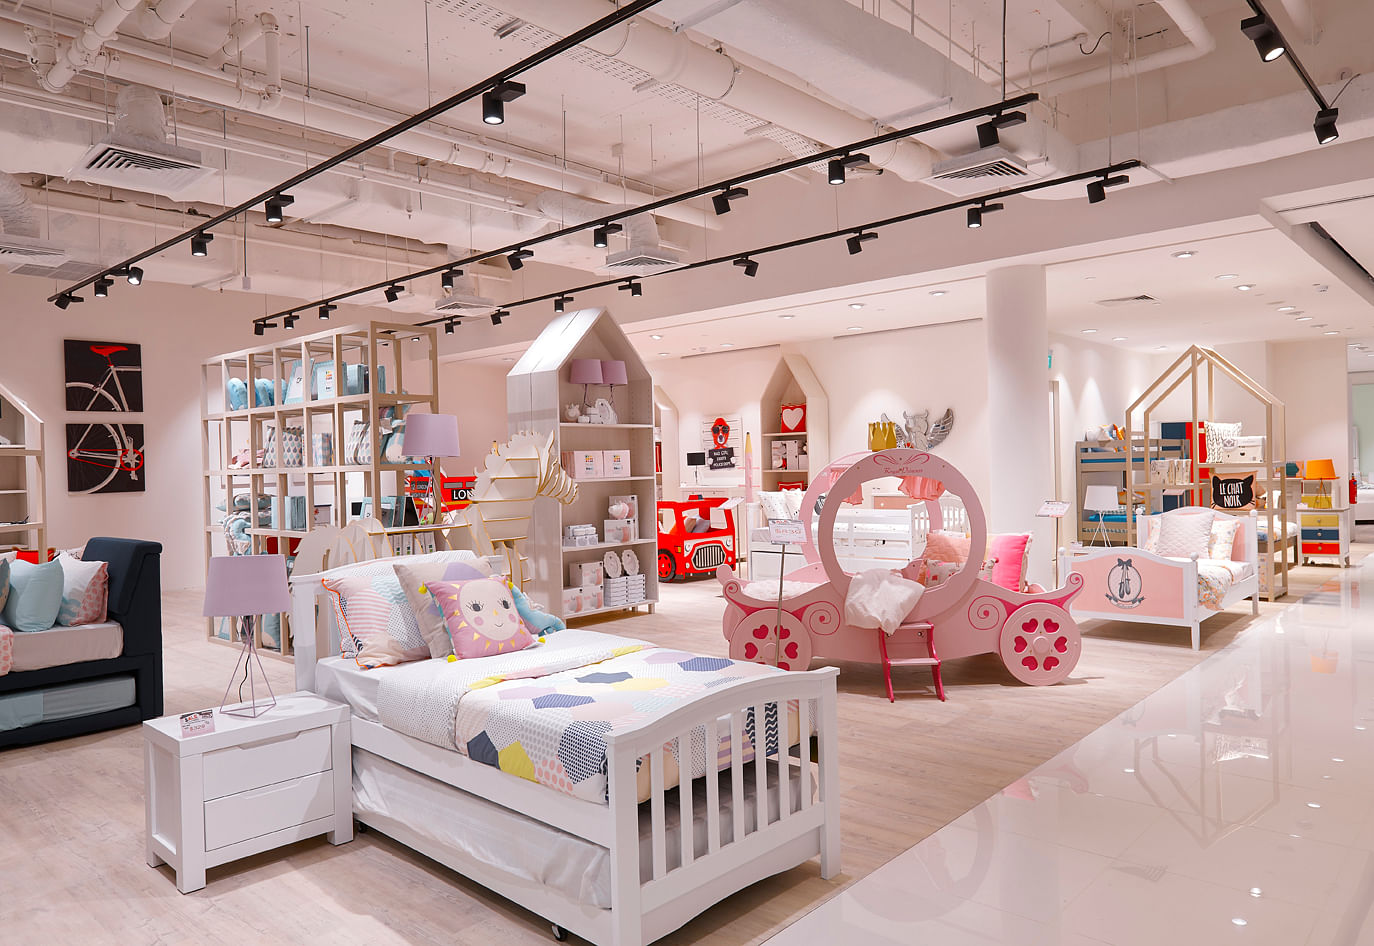 Kids Bedroom Harvey Norman harvey norman's new flagship superstore offers a revolutionary